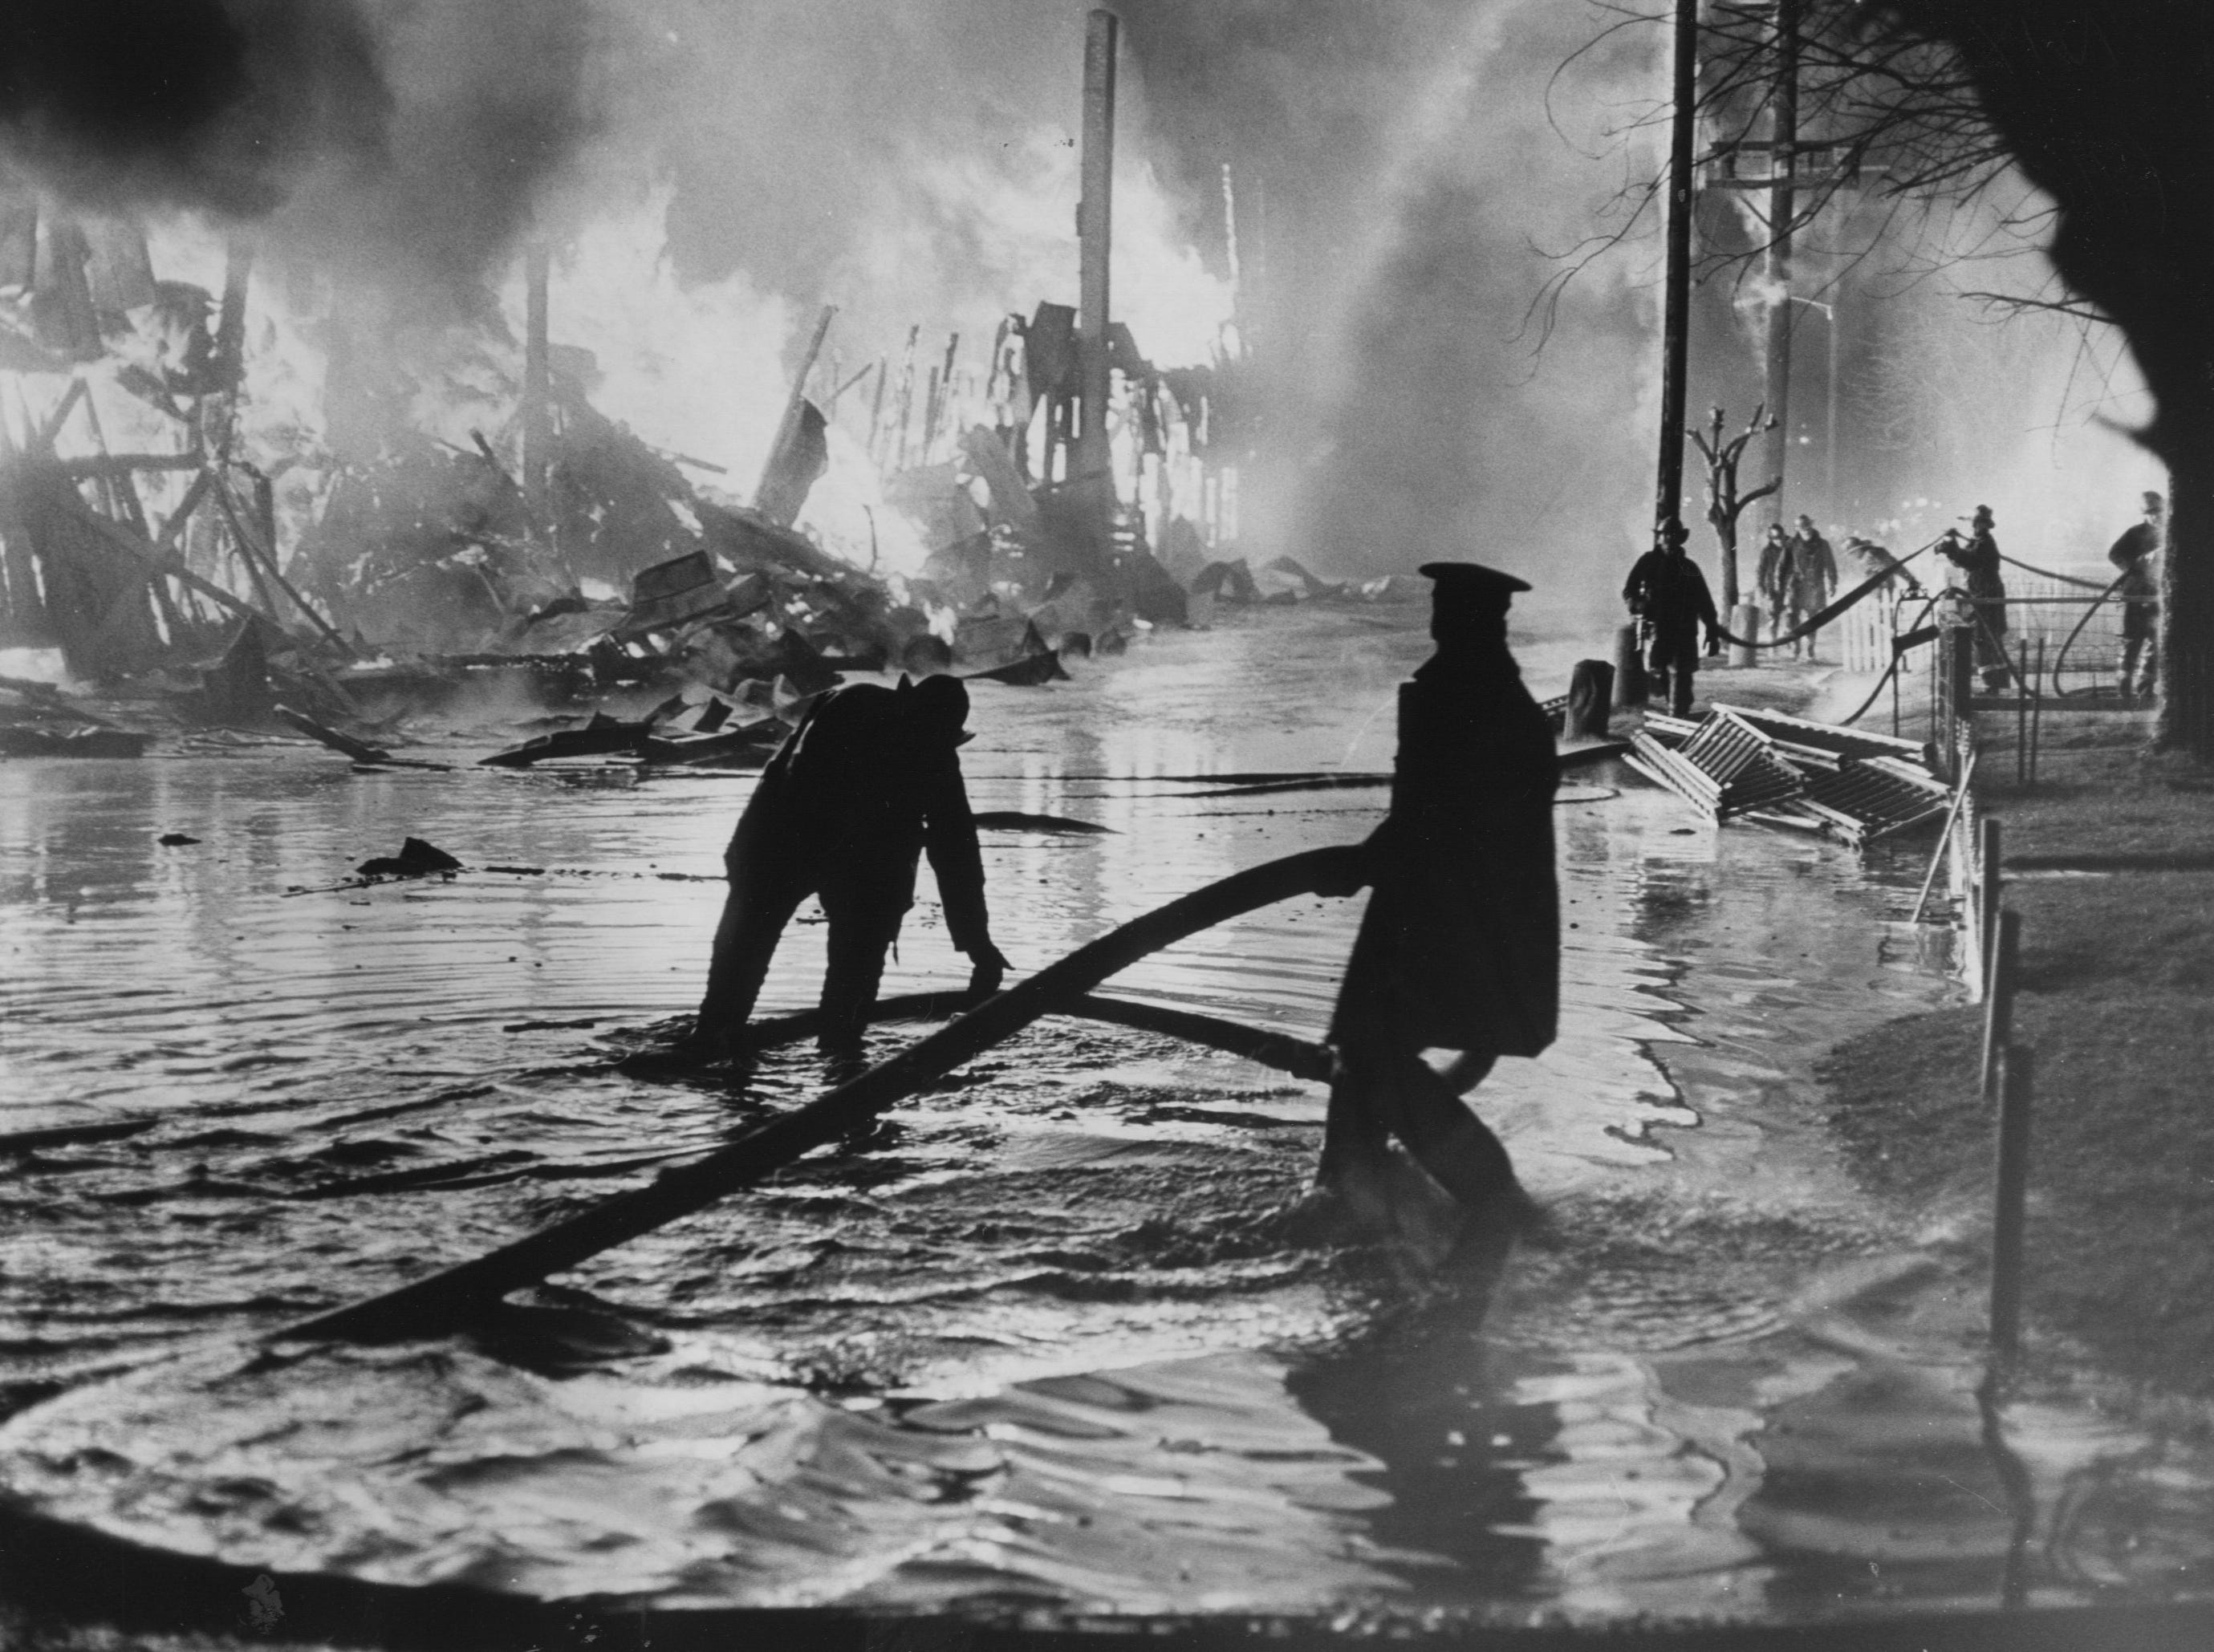 Standing ankle deep in water, firemen move hoses into position to fight a four-alarm blaze that destroyed a warehouse of the Louisville Sash & Door Co. last night. 